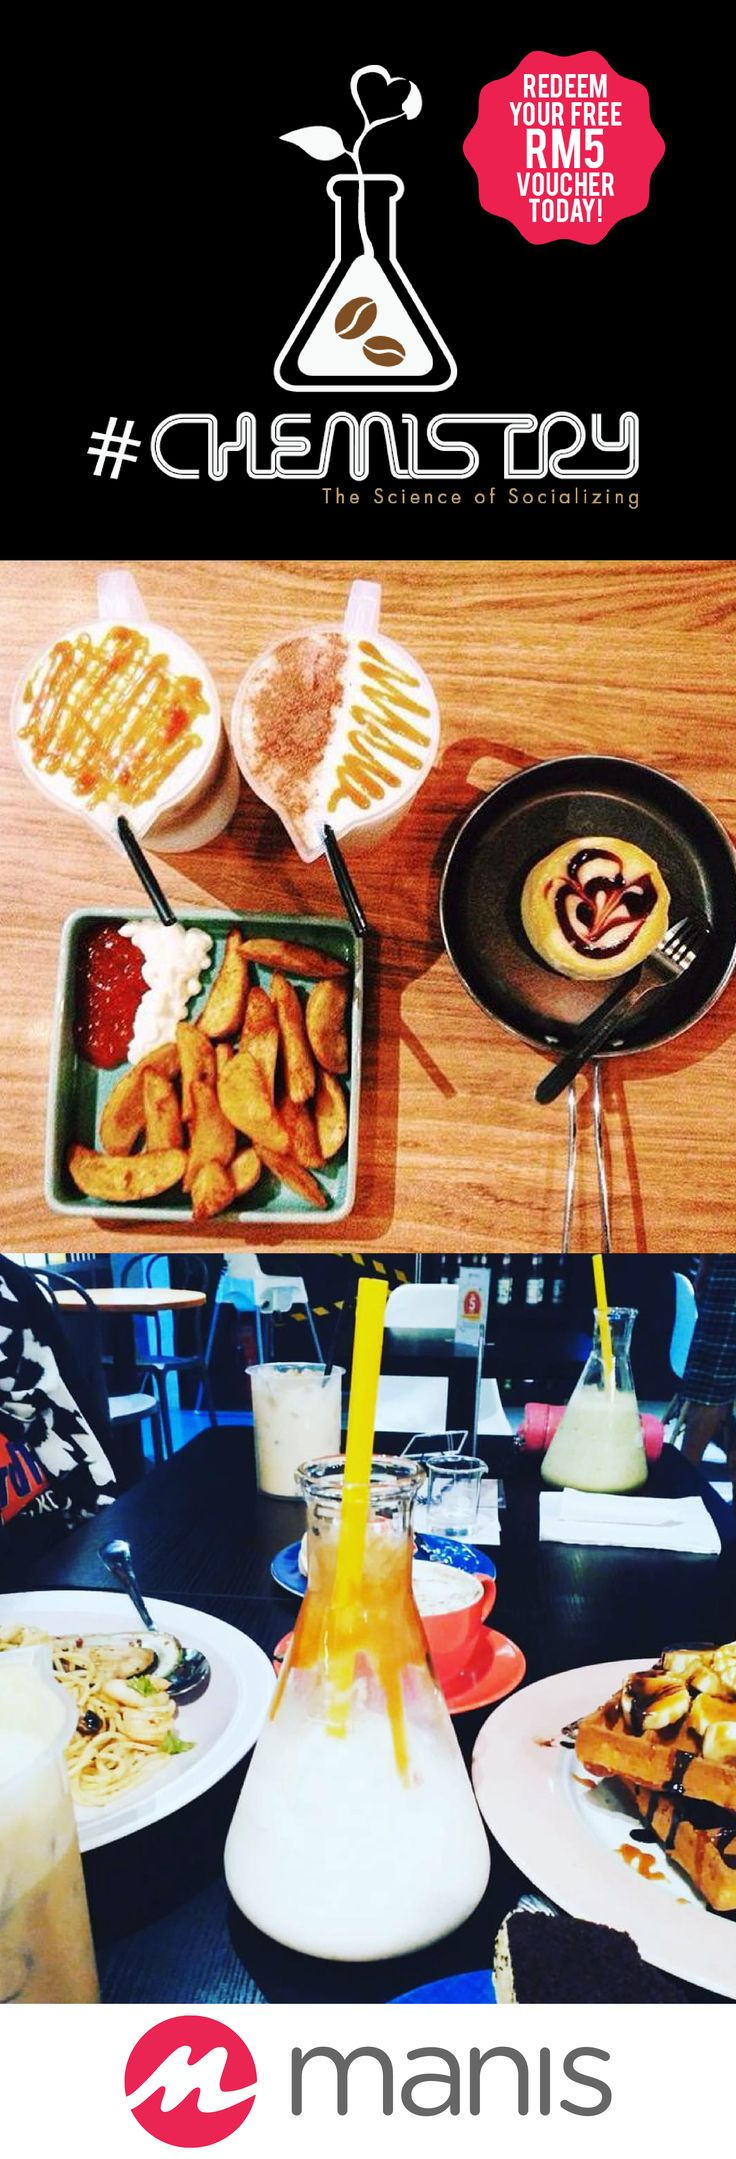 Looking for a cafe with a unique concept? Or the one that specialized in coffee and baked goods?  Look no further, you can get everything with Chemistry Café+Lab!  We have talked about them and we are going to talk about them again!  They are that good, that's why!  This time, the one-of-a-kind cafe is onboard with Manis with Cash Voucher, which means you can get RM 5 off for every spend of RM 20 in a single receipt!  Belgian waffles and coffee, anyone?  This is why, life is sweeter with…